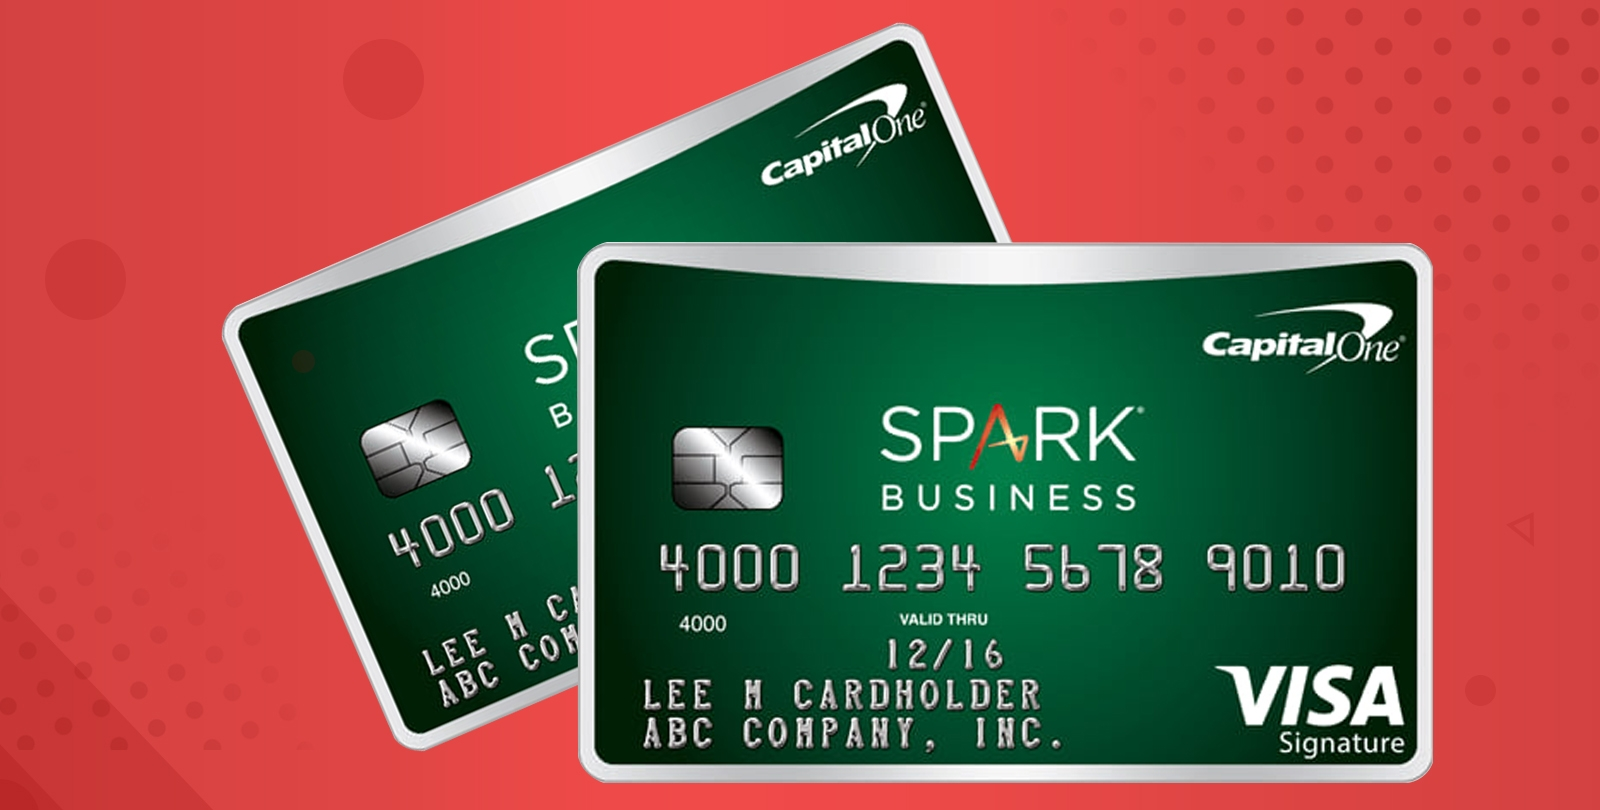 Journey® Student Rewards from Capital One® - Top10 credit cards